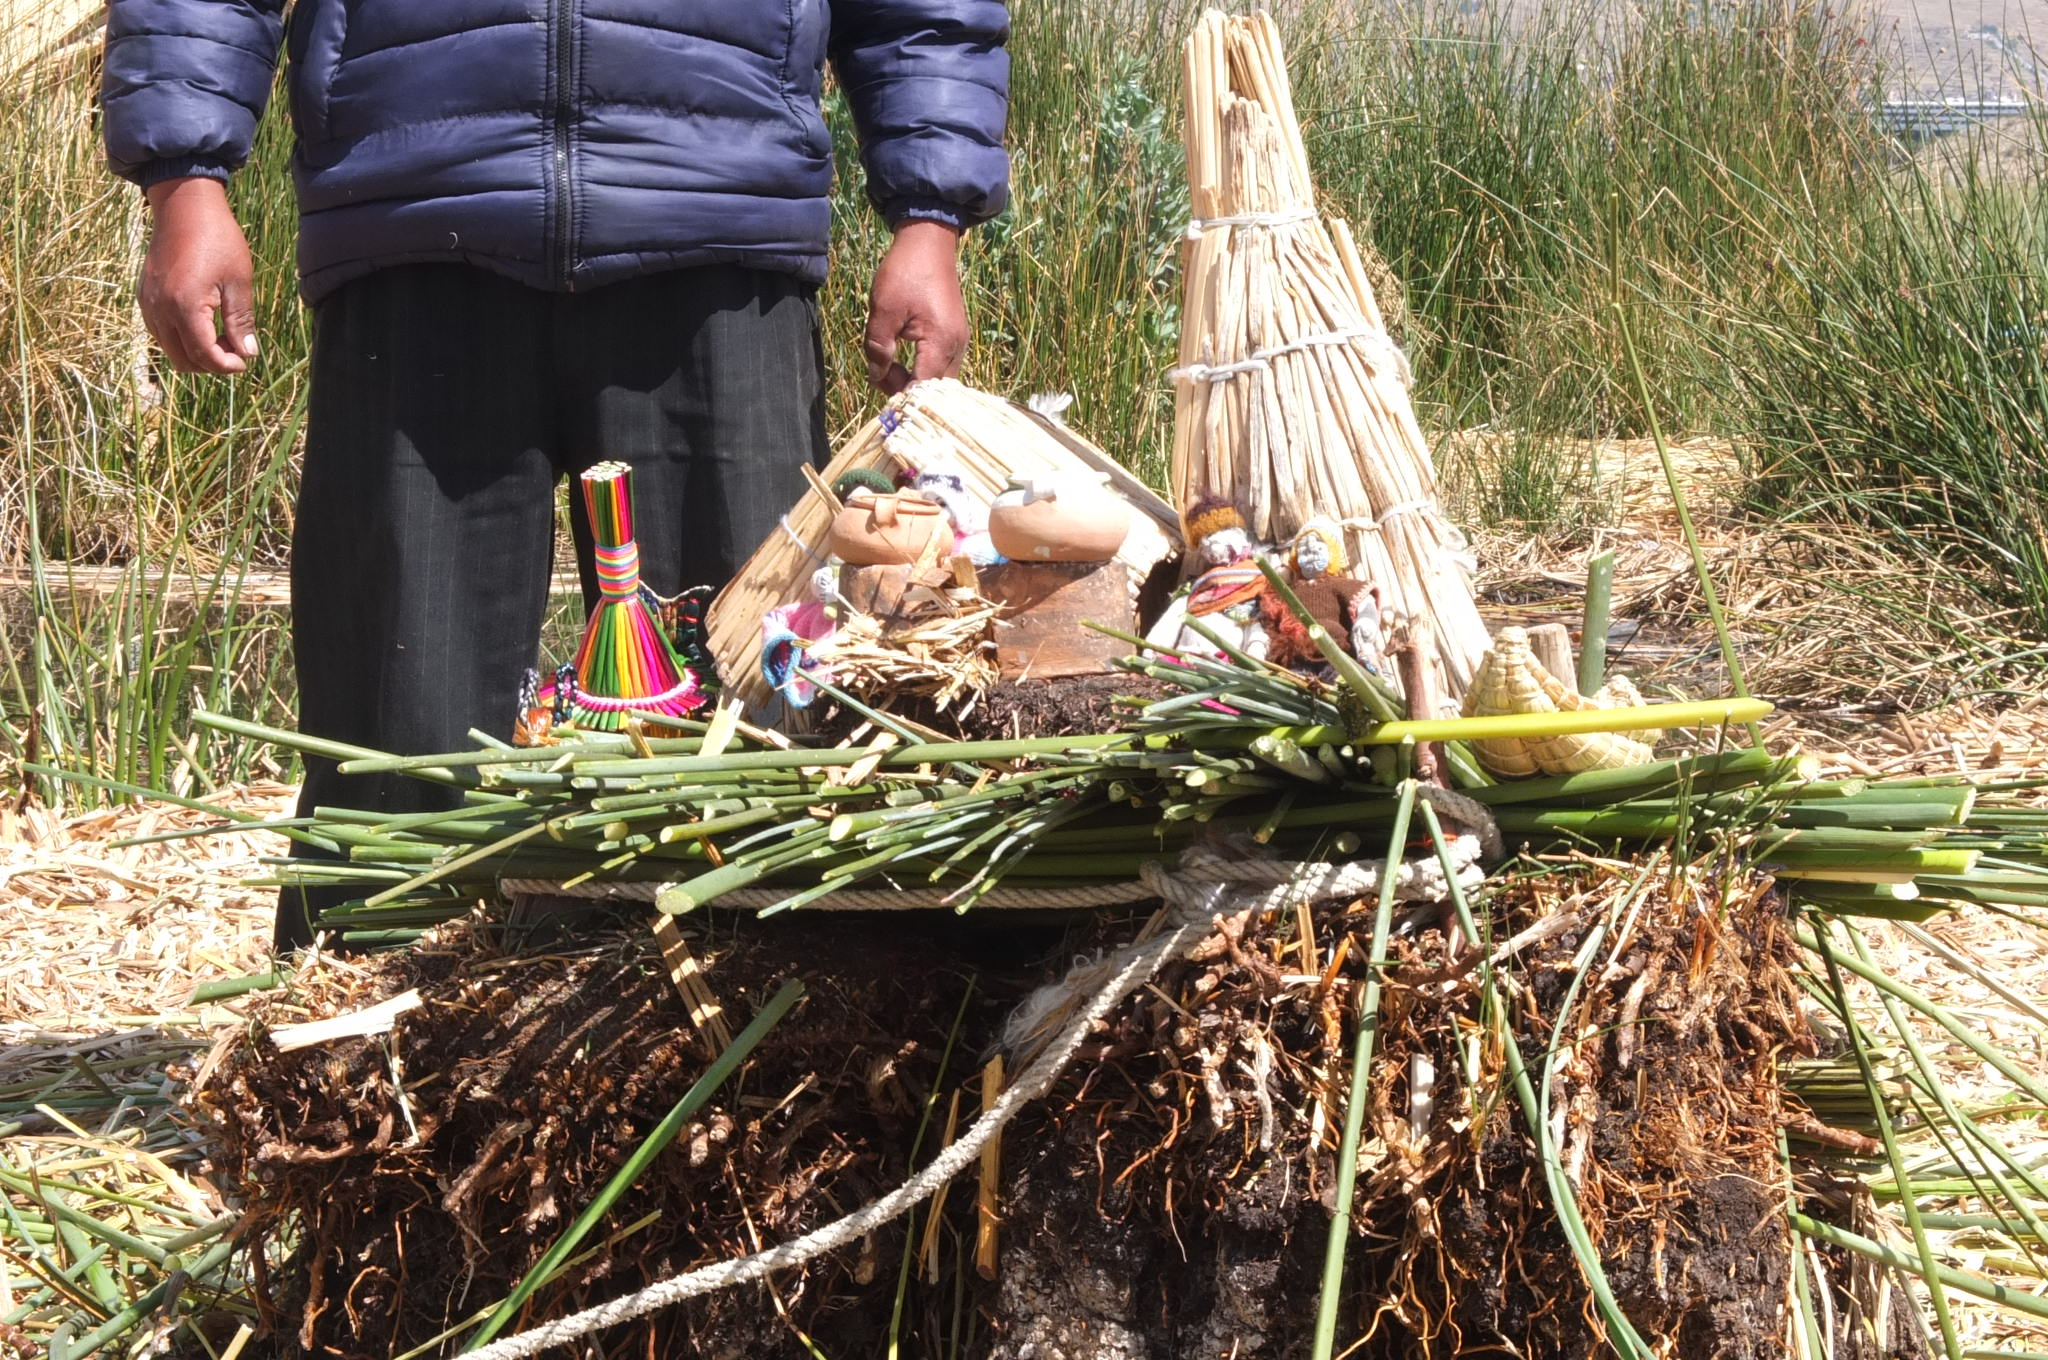 Lake Titicaca from Puno, Peru. The people built their house on reeds.